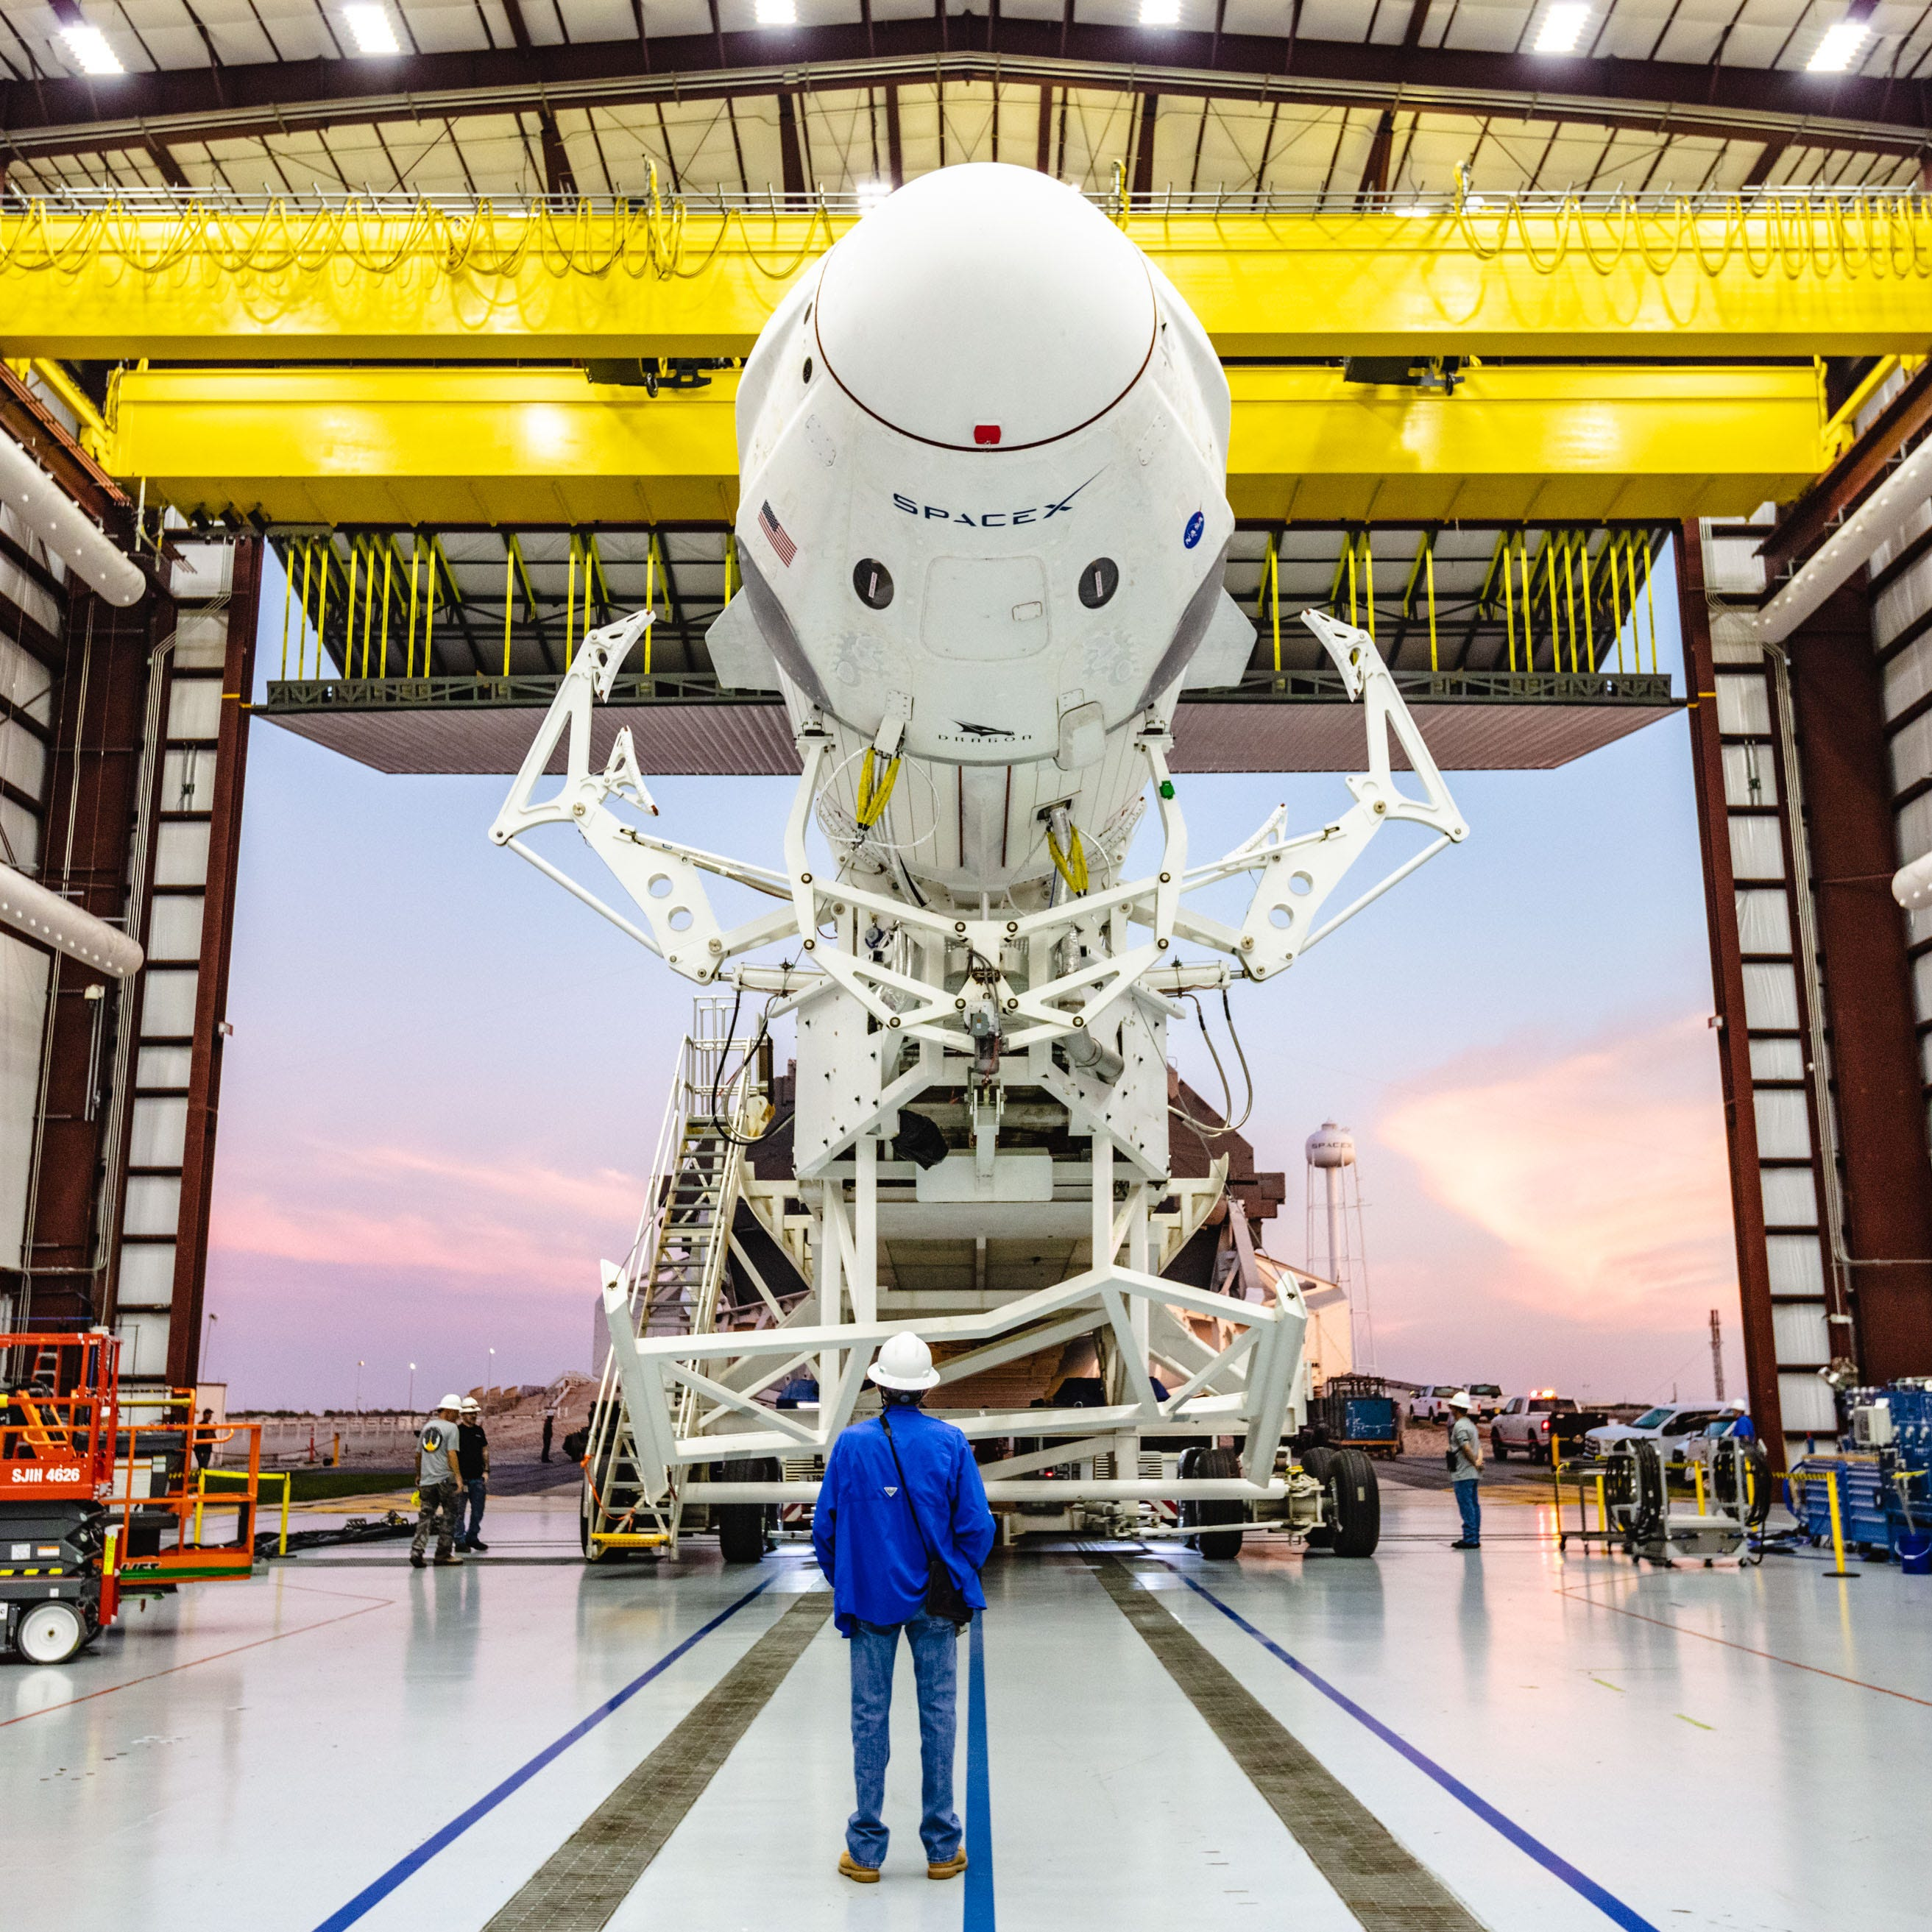 In 'huge day' for KSC, SpaceX set to launch Crew Dragon test flight